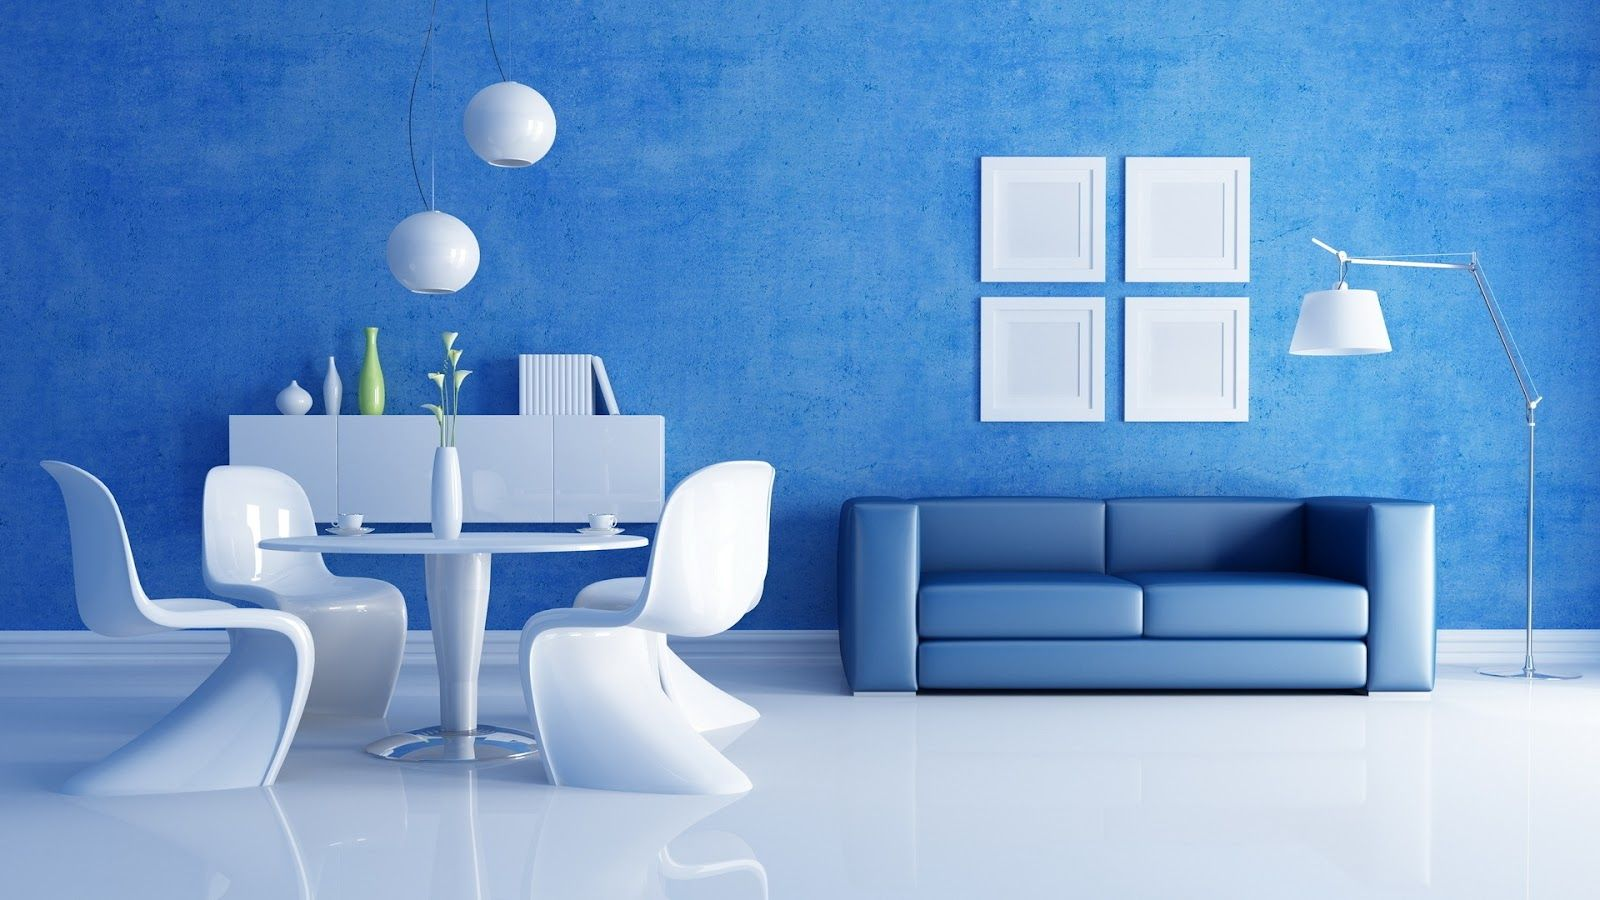 pretty blue wallpaper for rooms - Google Search   For when I re-do ...